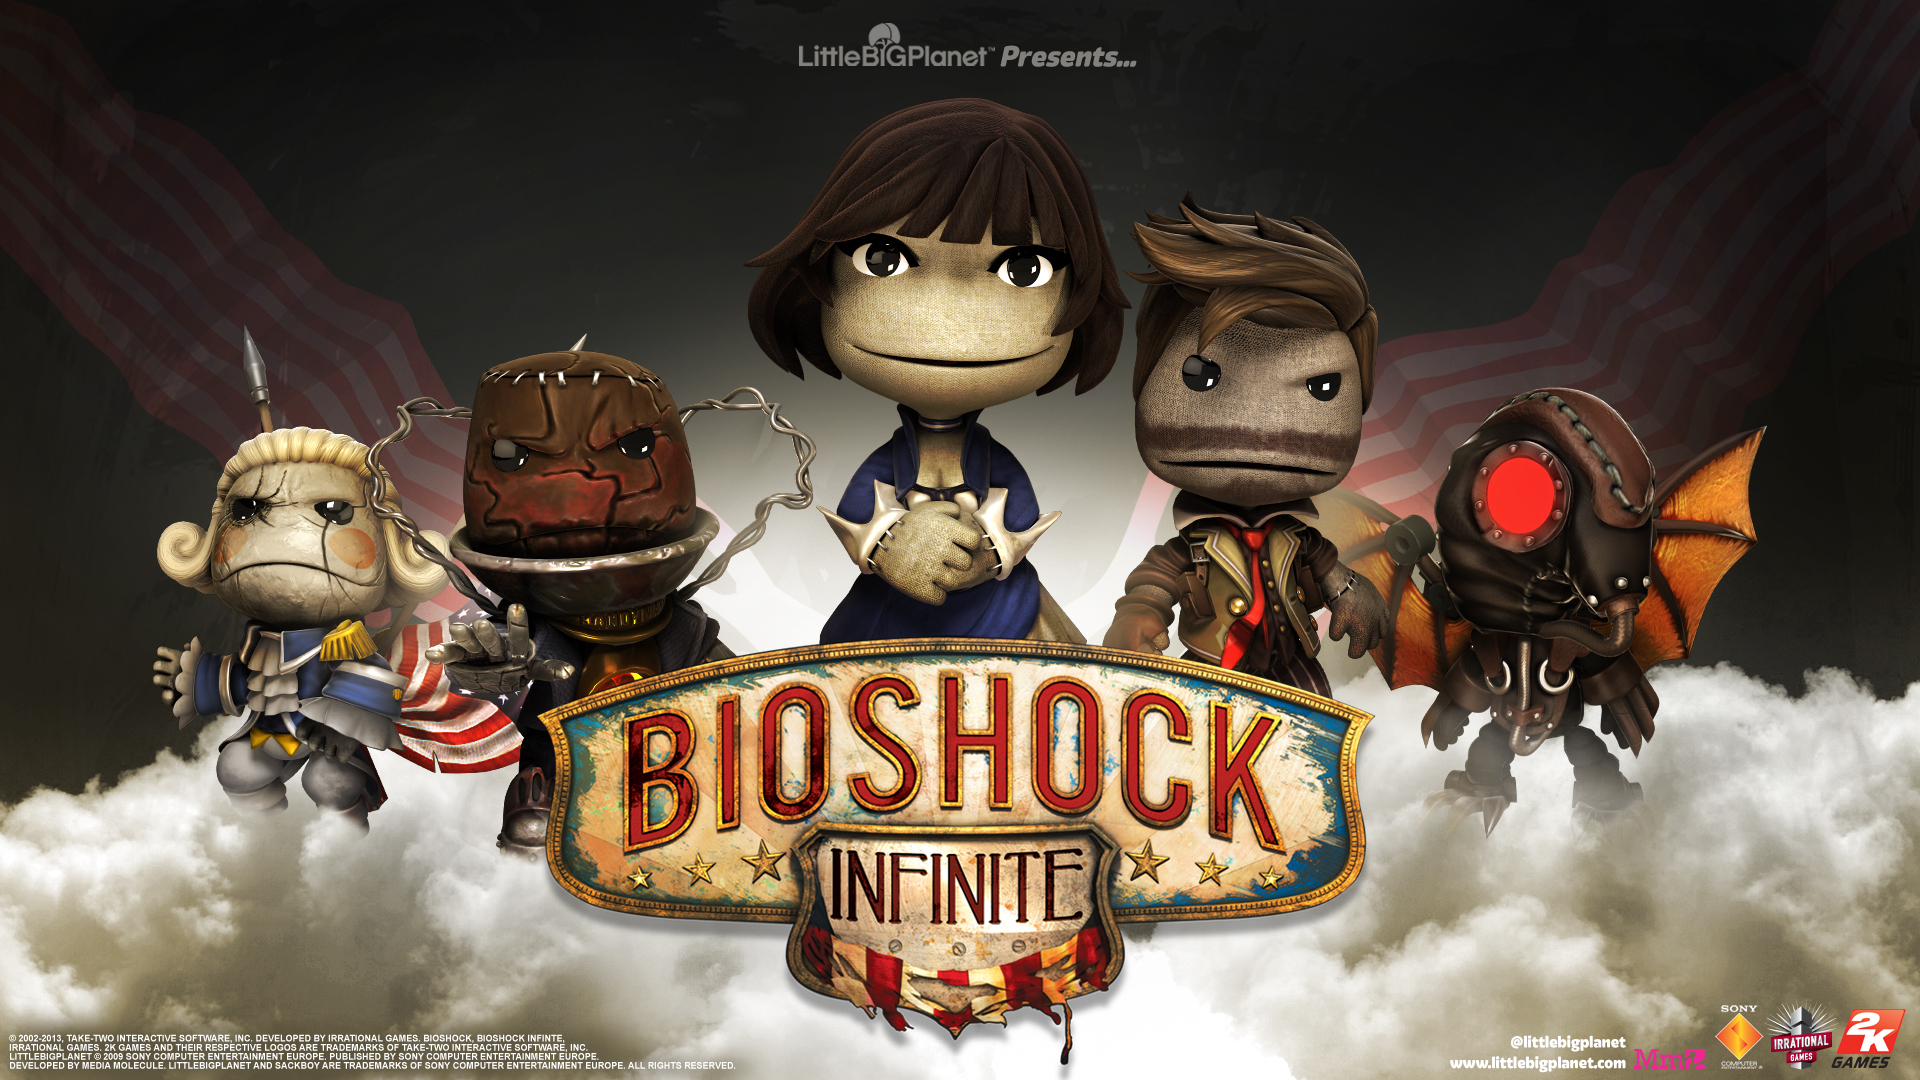 bioshockinfinitedark6qupi